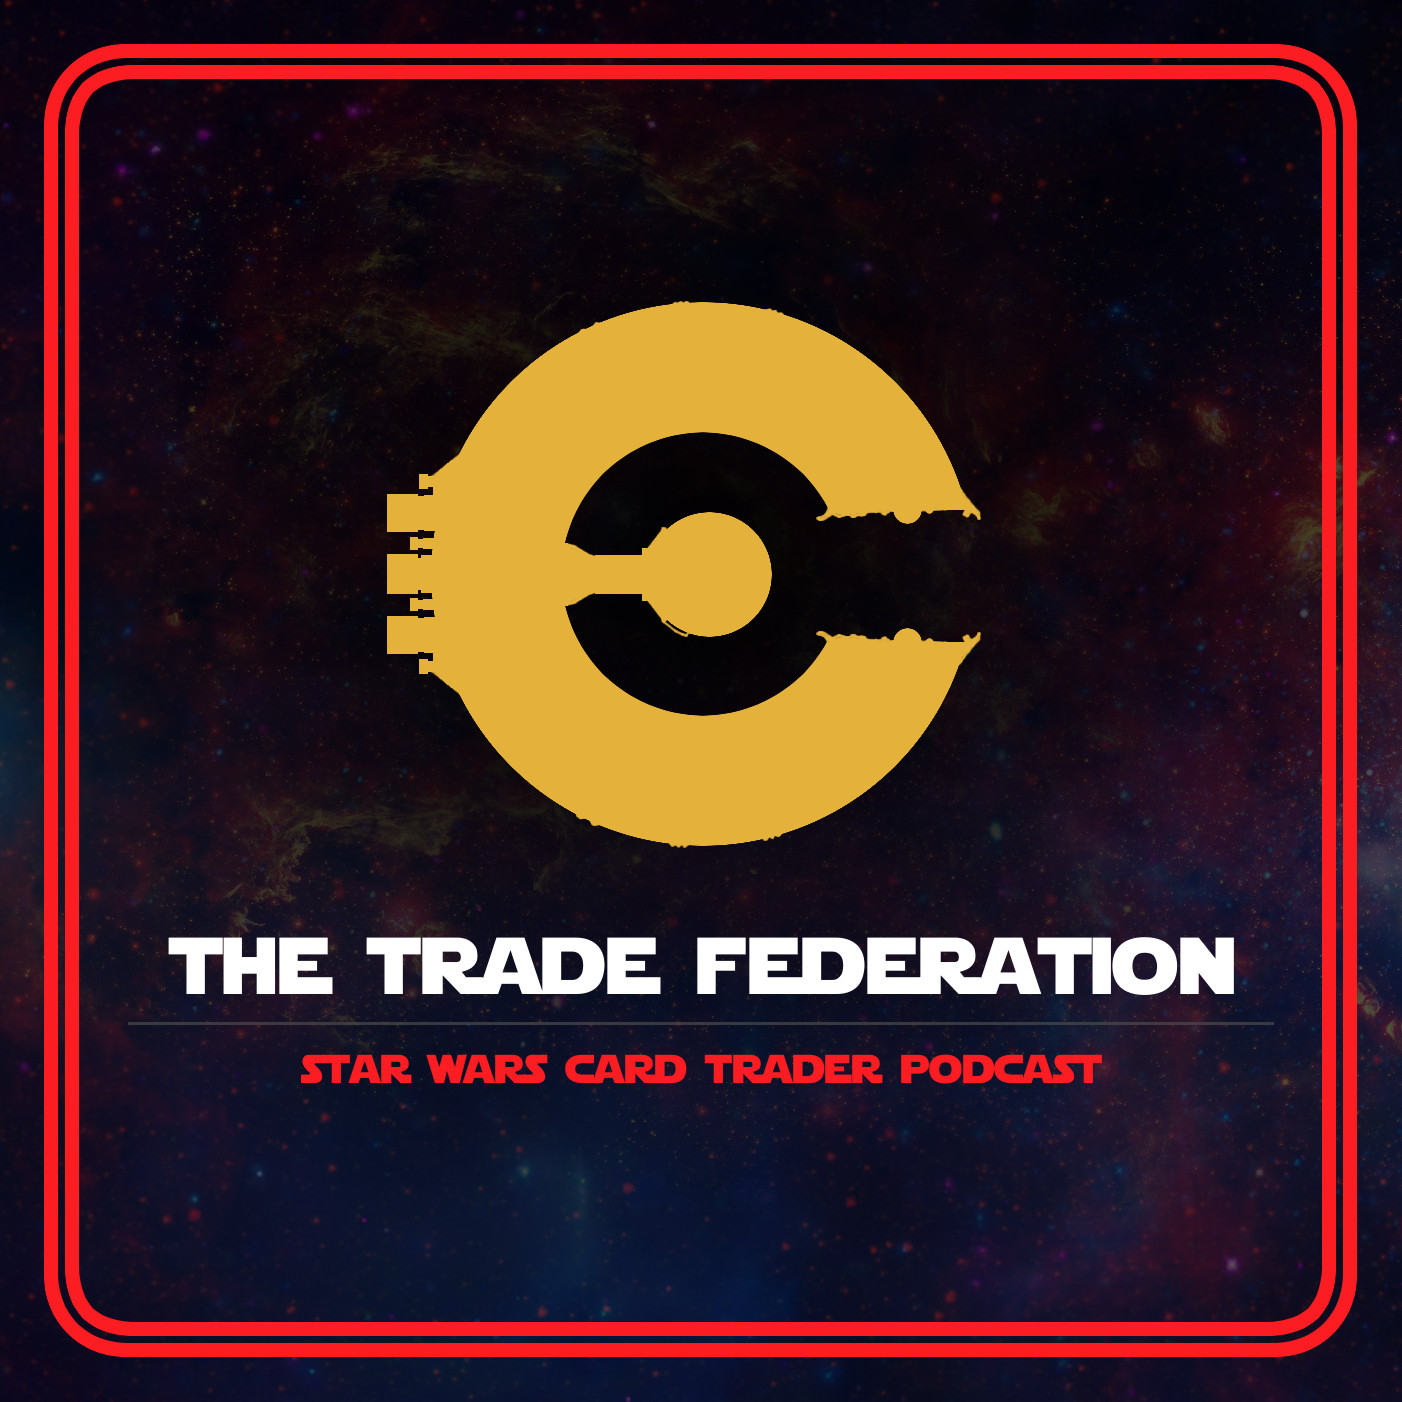 The Trade Federation podcast